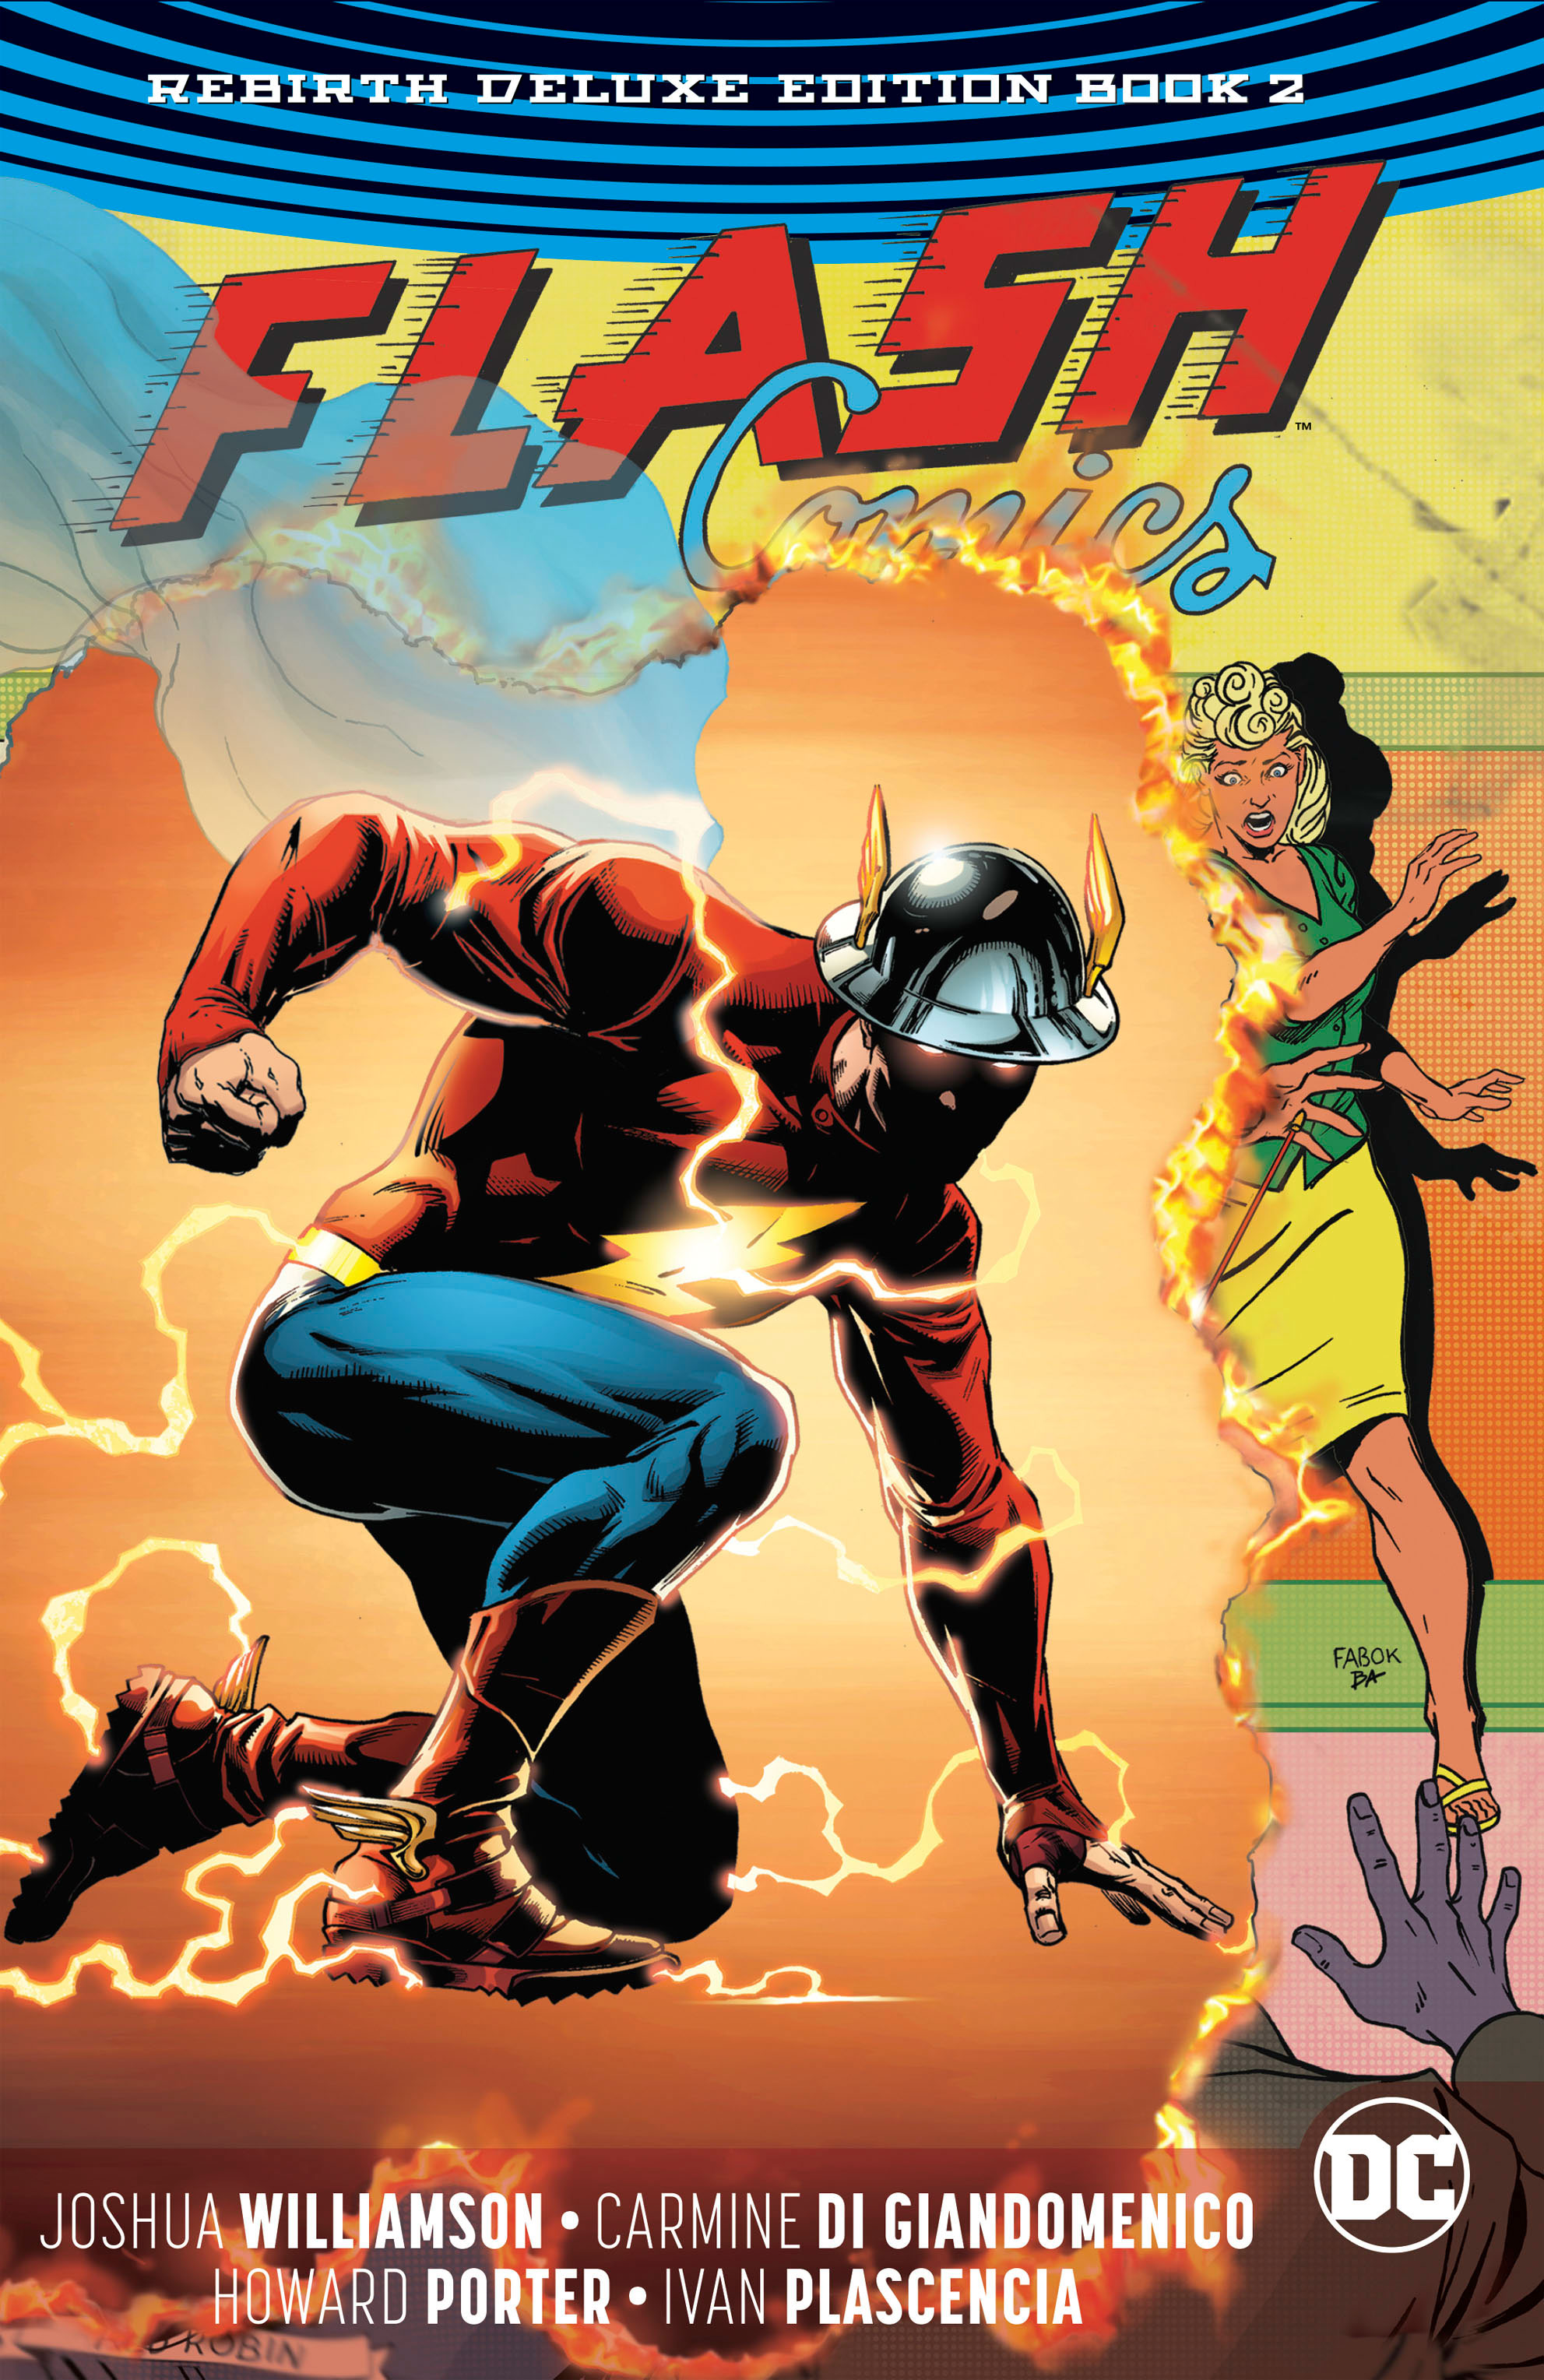 The Flash: Rebirth Deluxe Edition Book 2 (Collected)